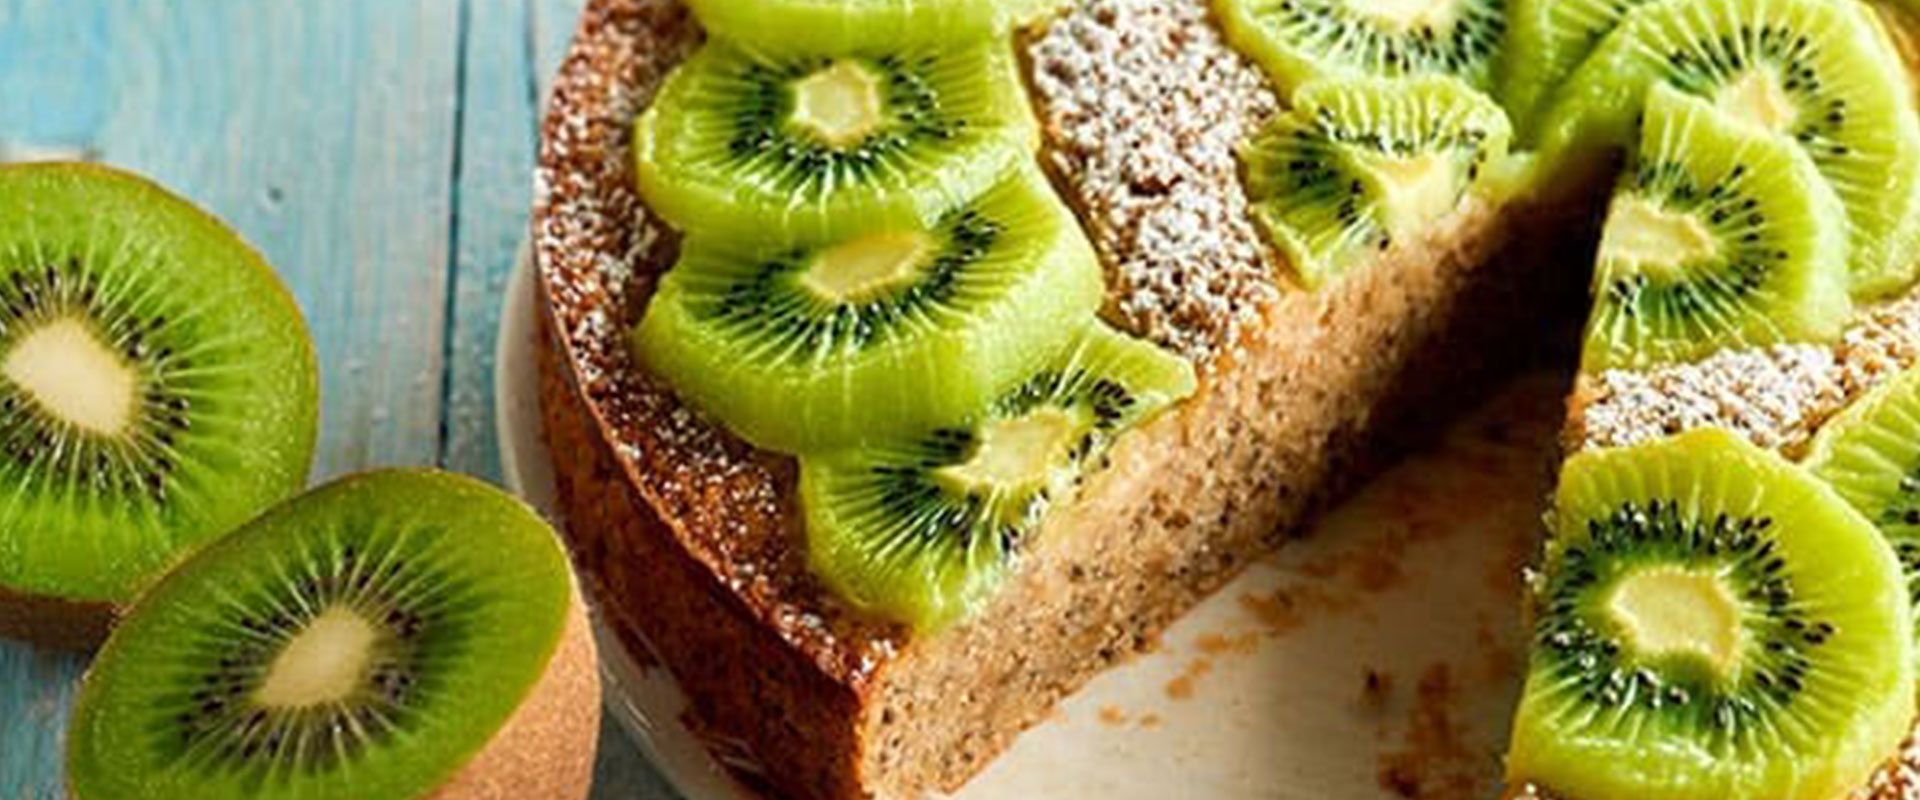 recipe18-banana-kiwi-cake-thumbnAil